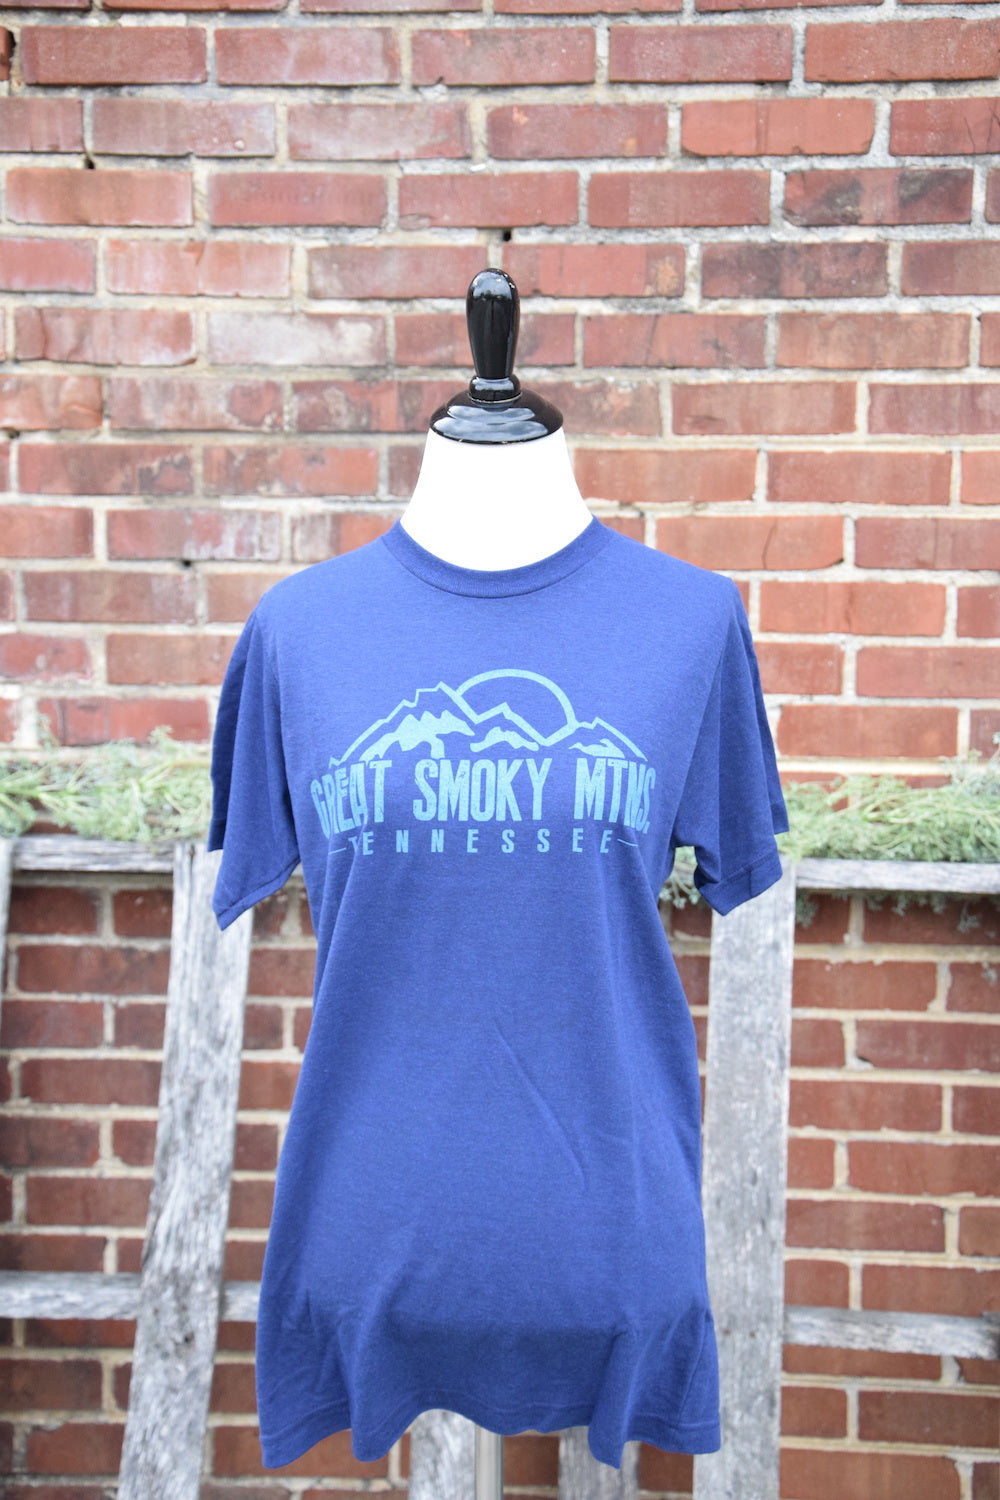 SALE- Great Smoky Mountains Tennessee Tee